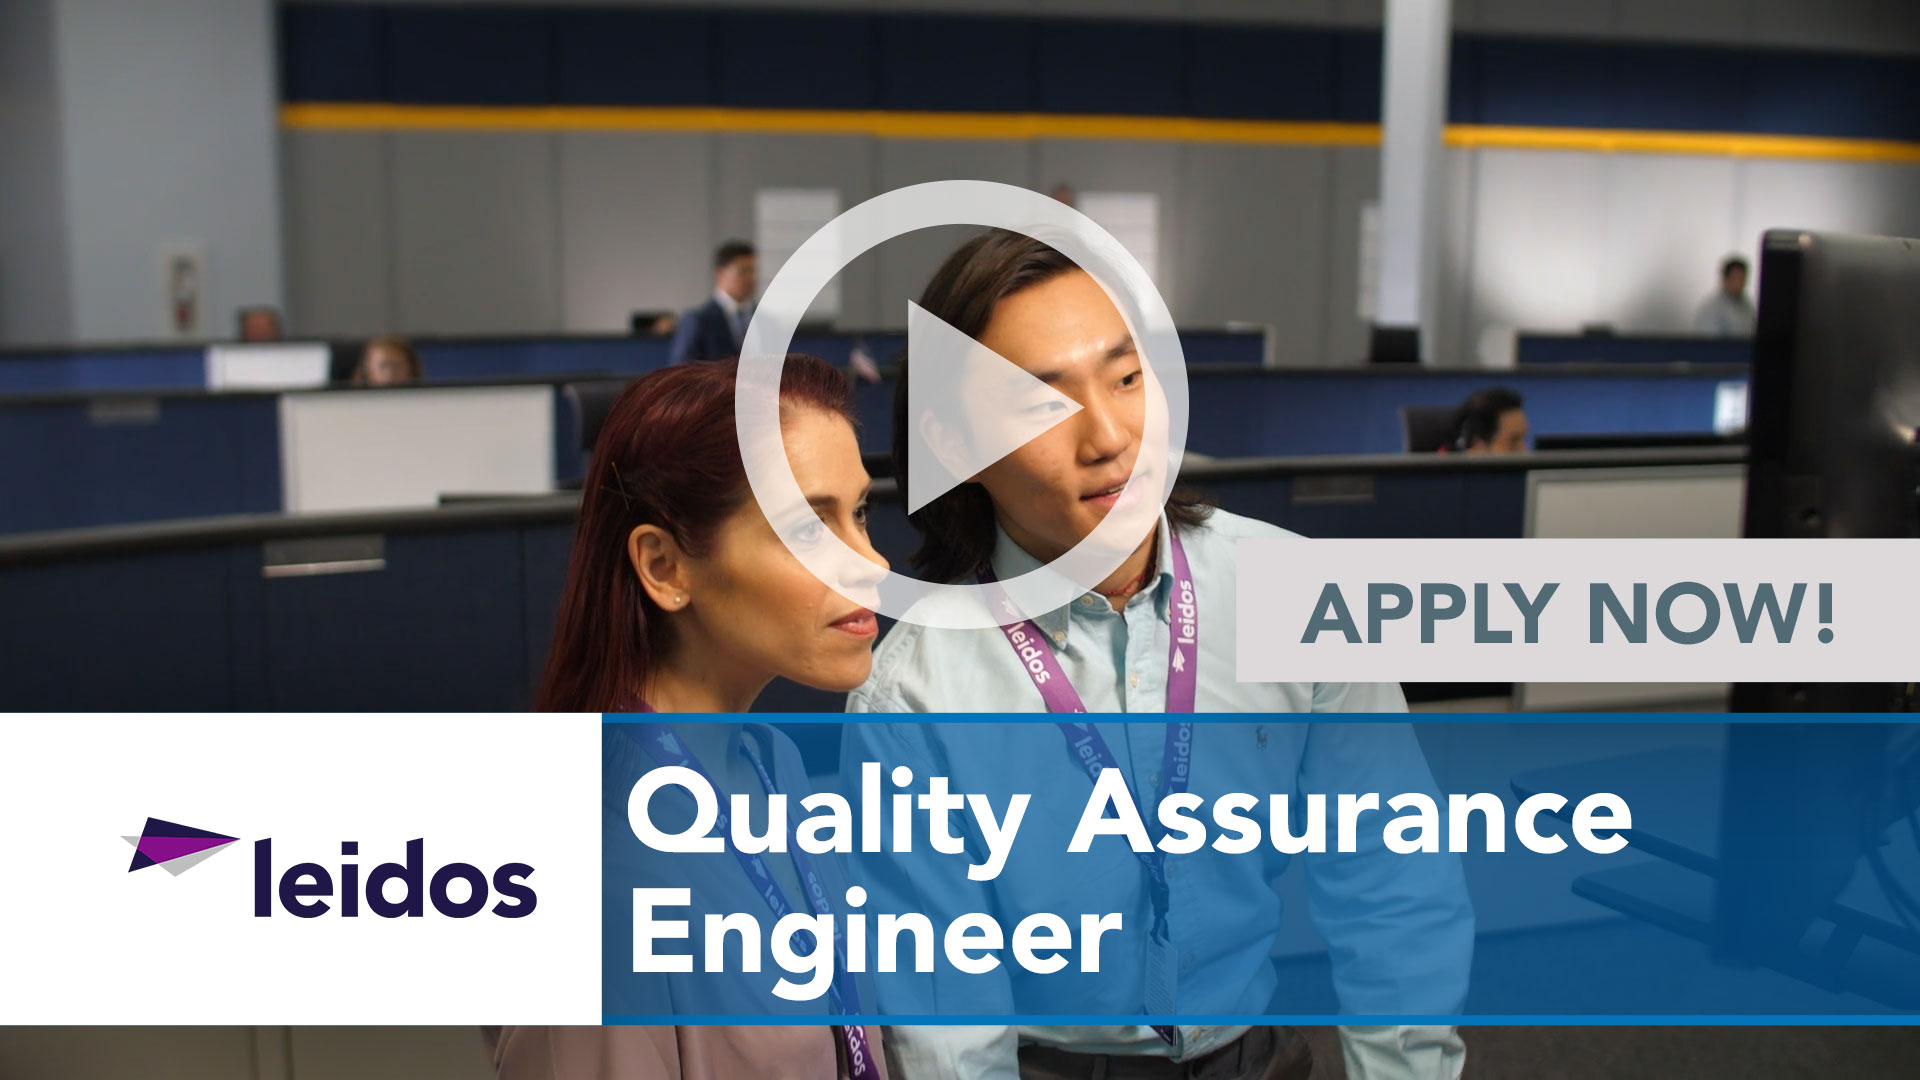 Watch our careers video for available job opening Quality Assurance Engineer in National Capital Region with